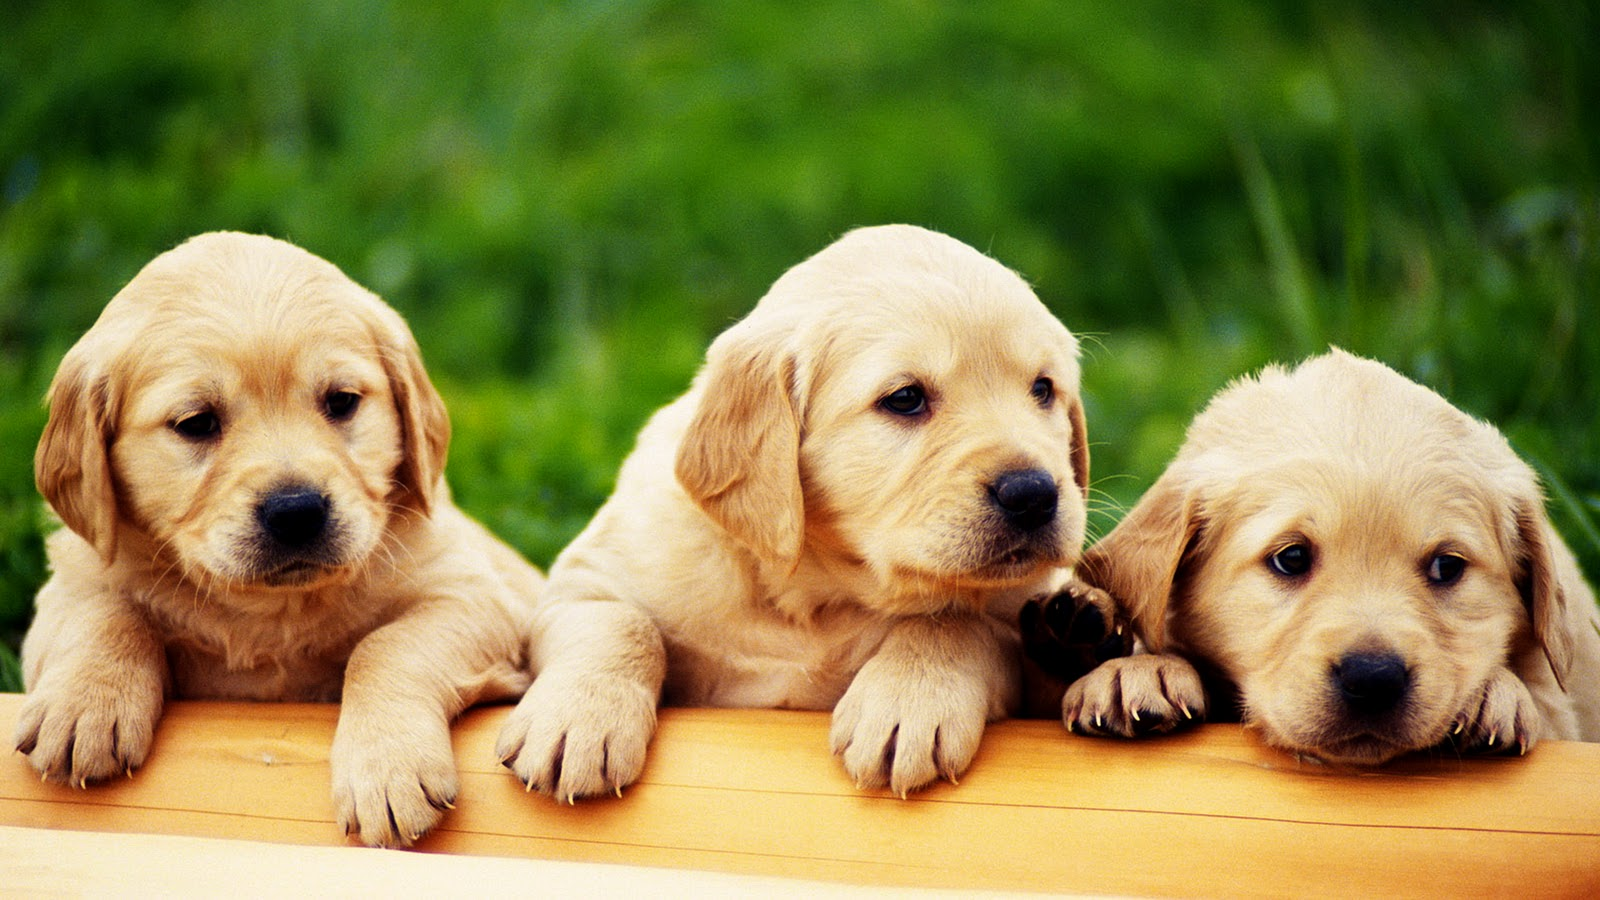 Cute Puppies HD Wallpapers Collection Download Wallpapers in HD 1600x900